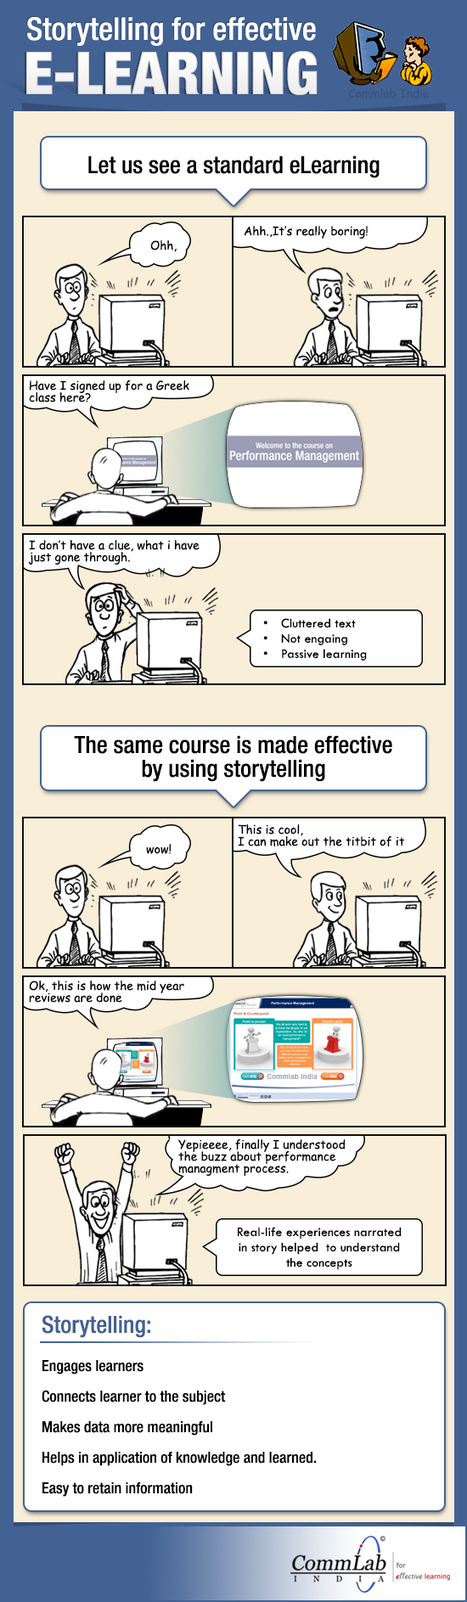 Storytelling For Effective E-learning – An Infographic | Online Spanish Courses | Scoop.it